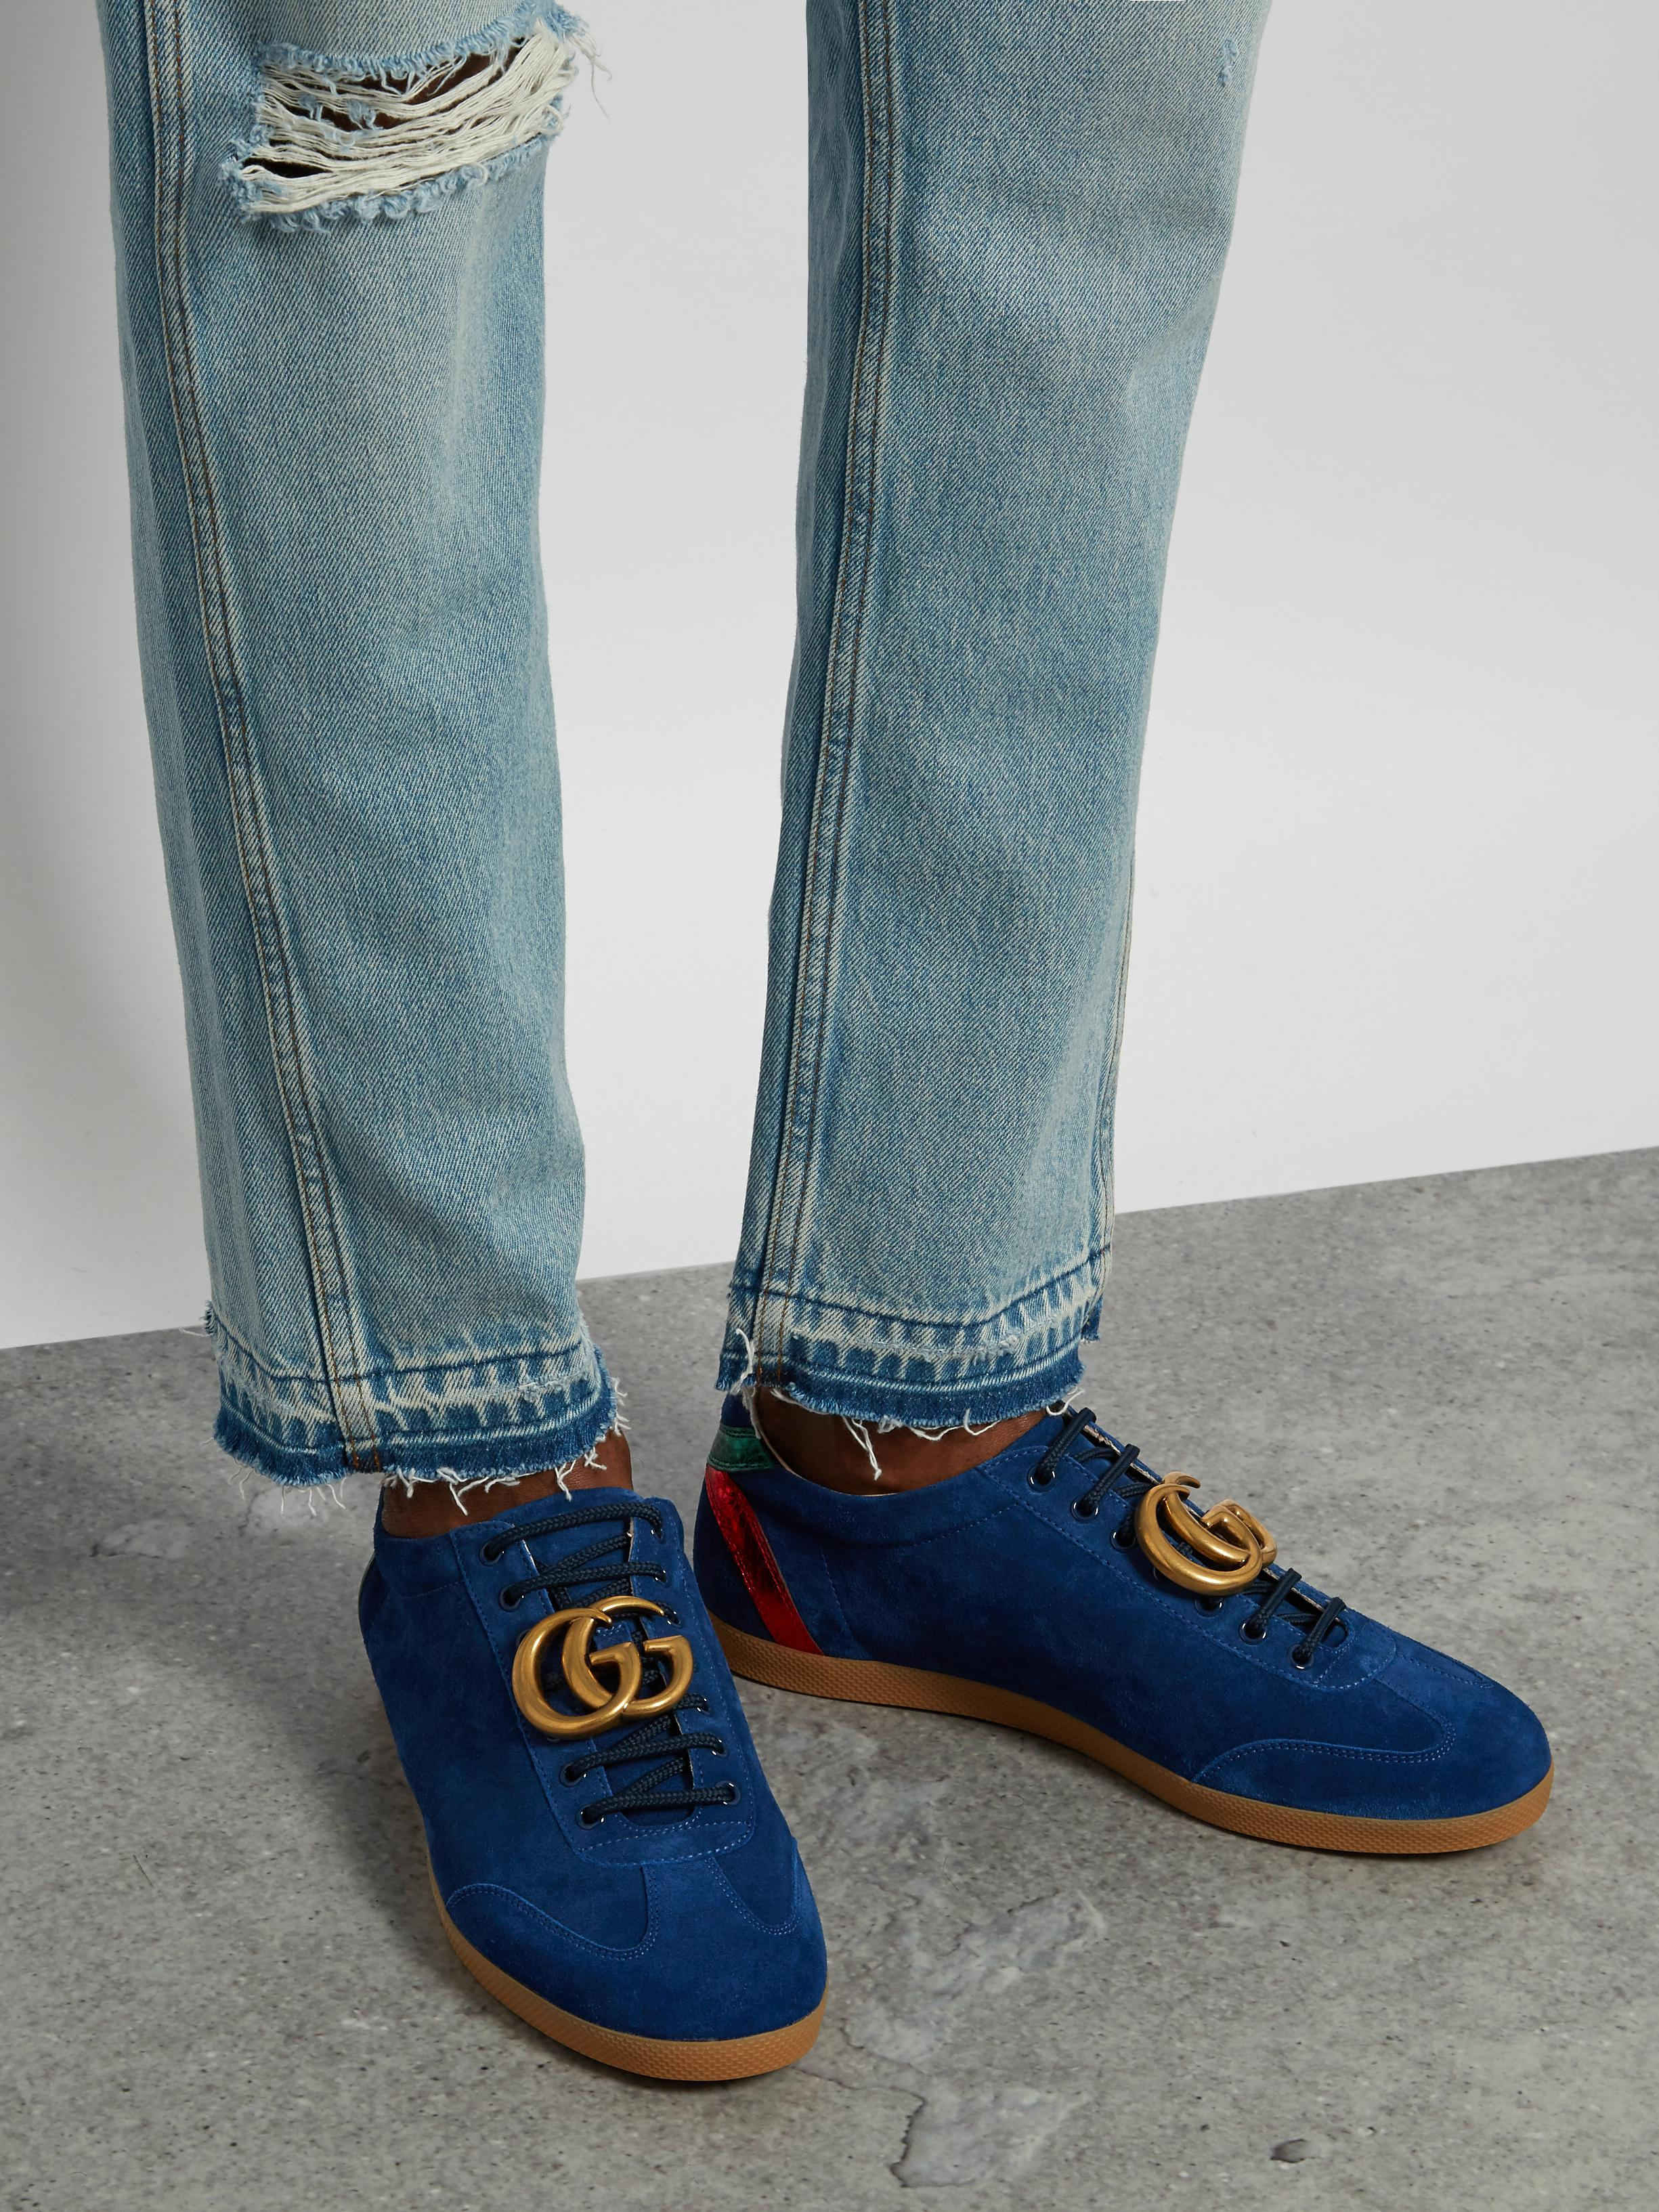 3f18572b4b2c8 Lyst - Gucci Bambi Suede Trainers in Blue for Men